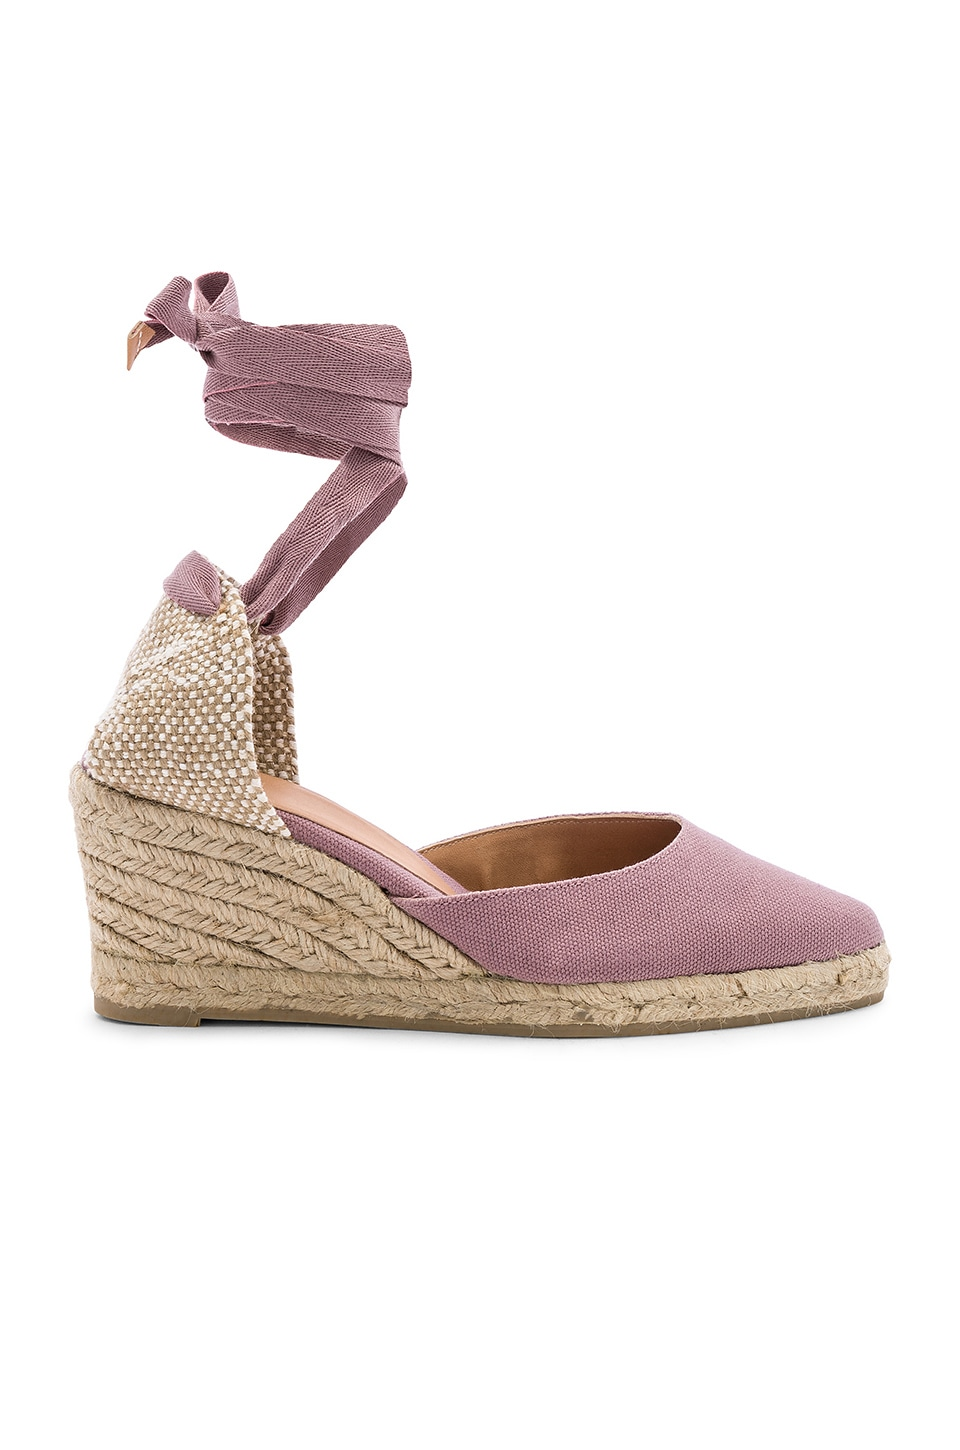 Castaner Joyce Wedge in Malva